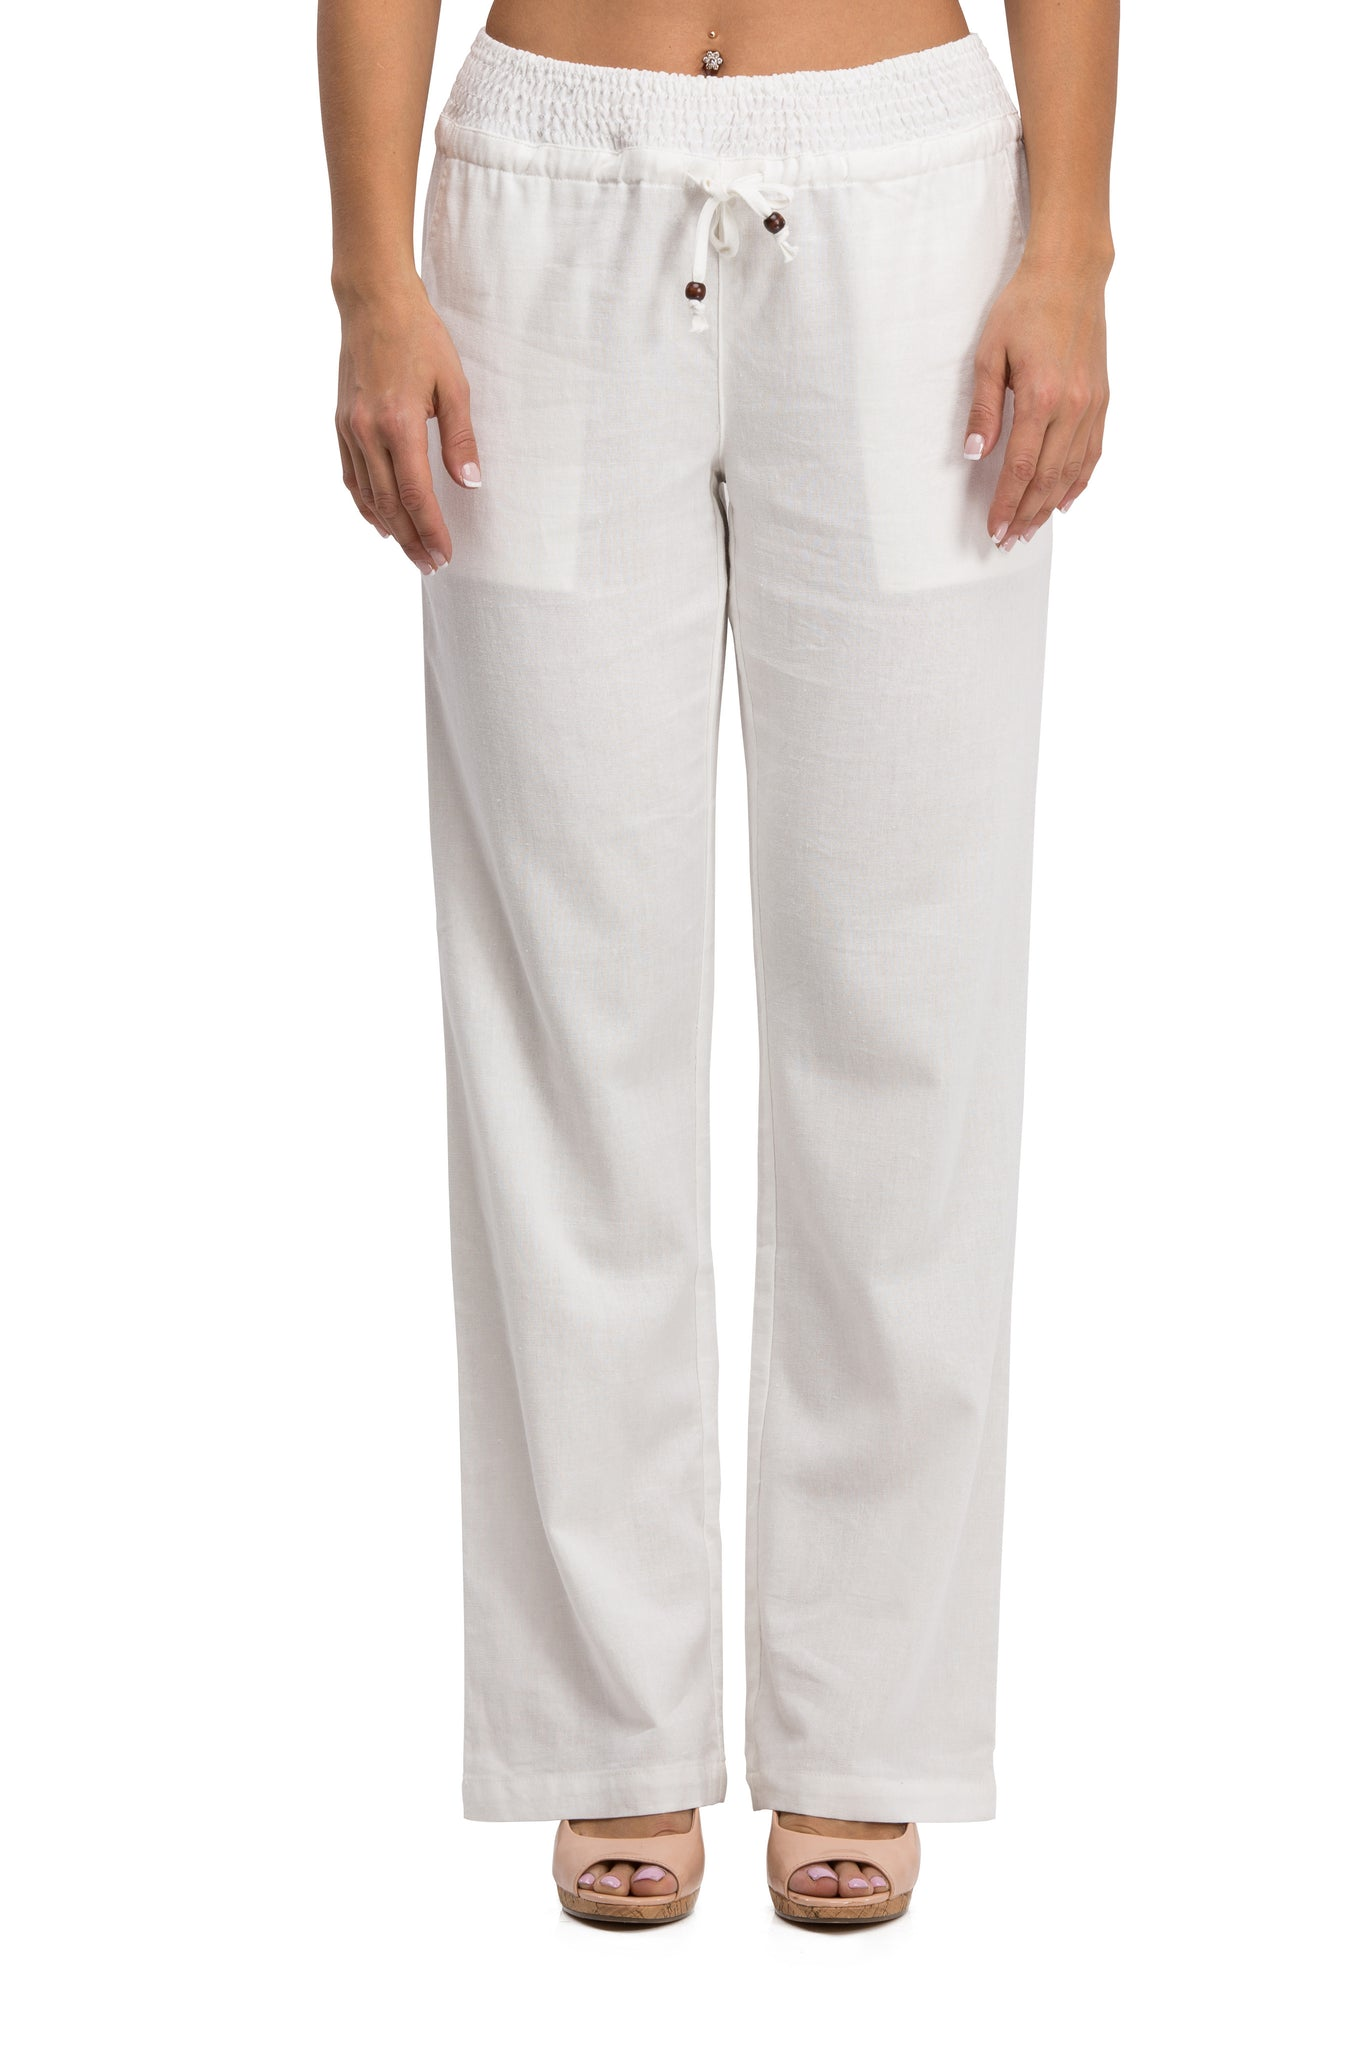 Comfy Drawstring Linen Pants Long with Smocked Band Waist (White) - Poplooks